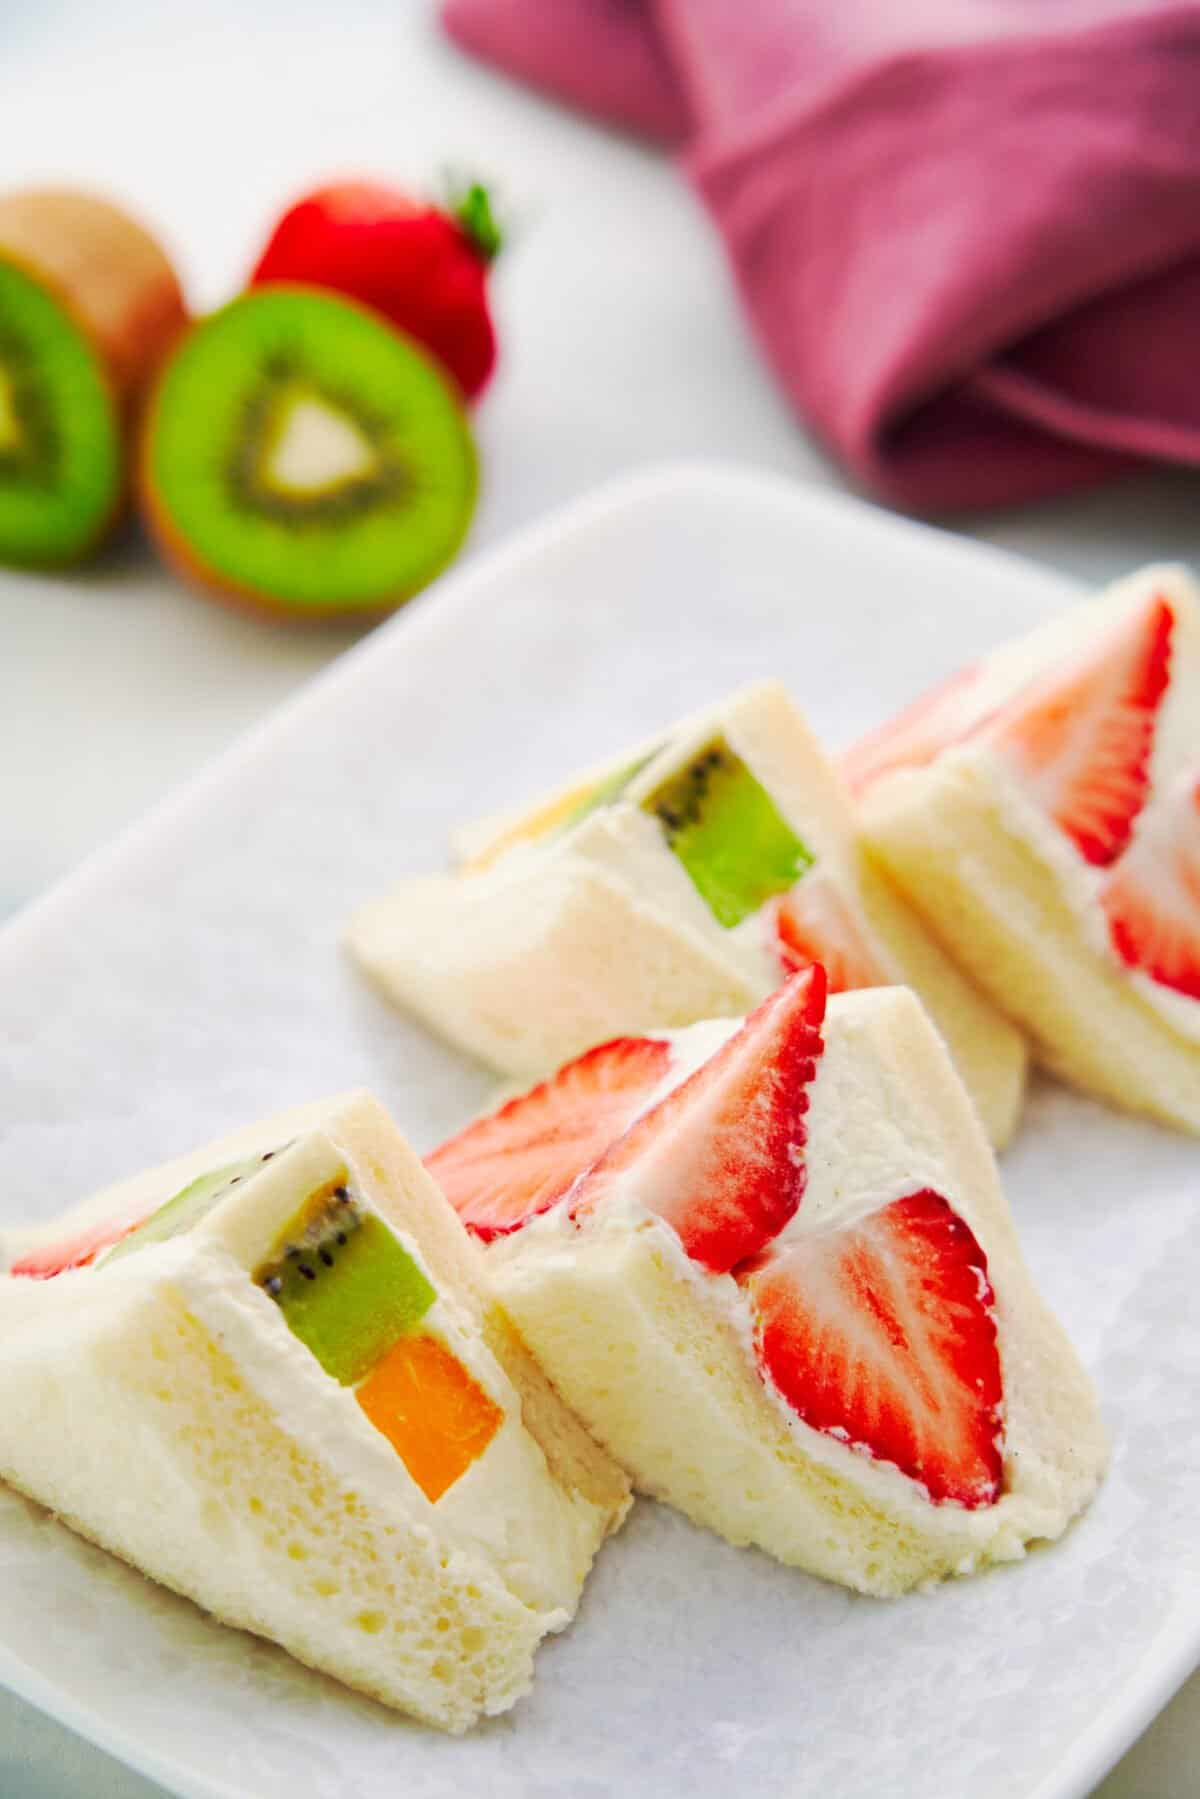 Loaded with ripe fruit and vanilla-infused cream, fruit sandwiches are an easy snack or casual dessert that comes together in minutes.